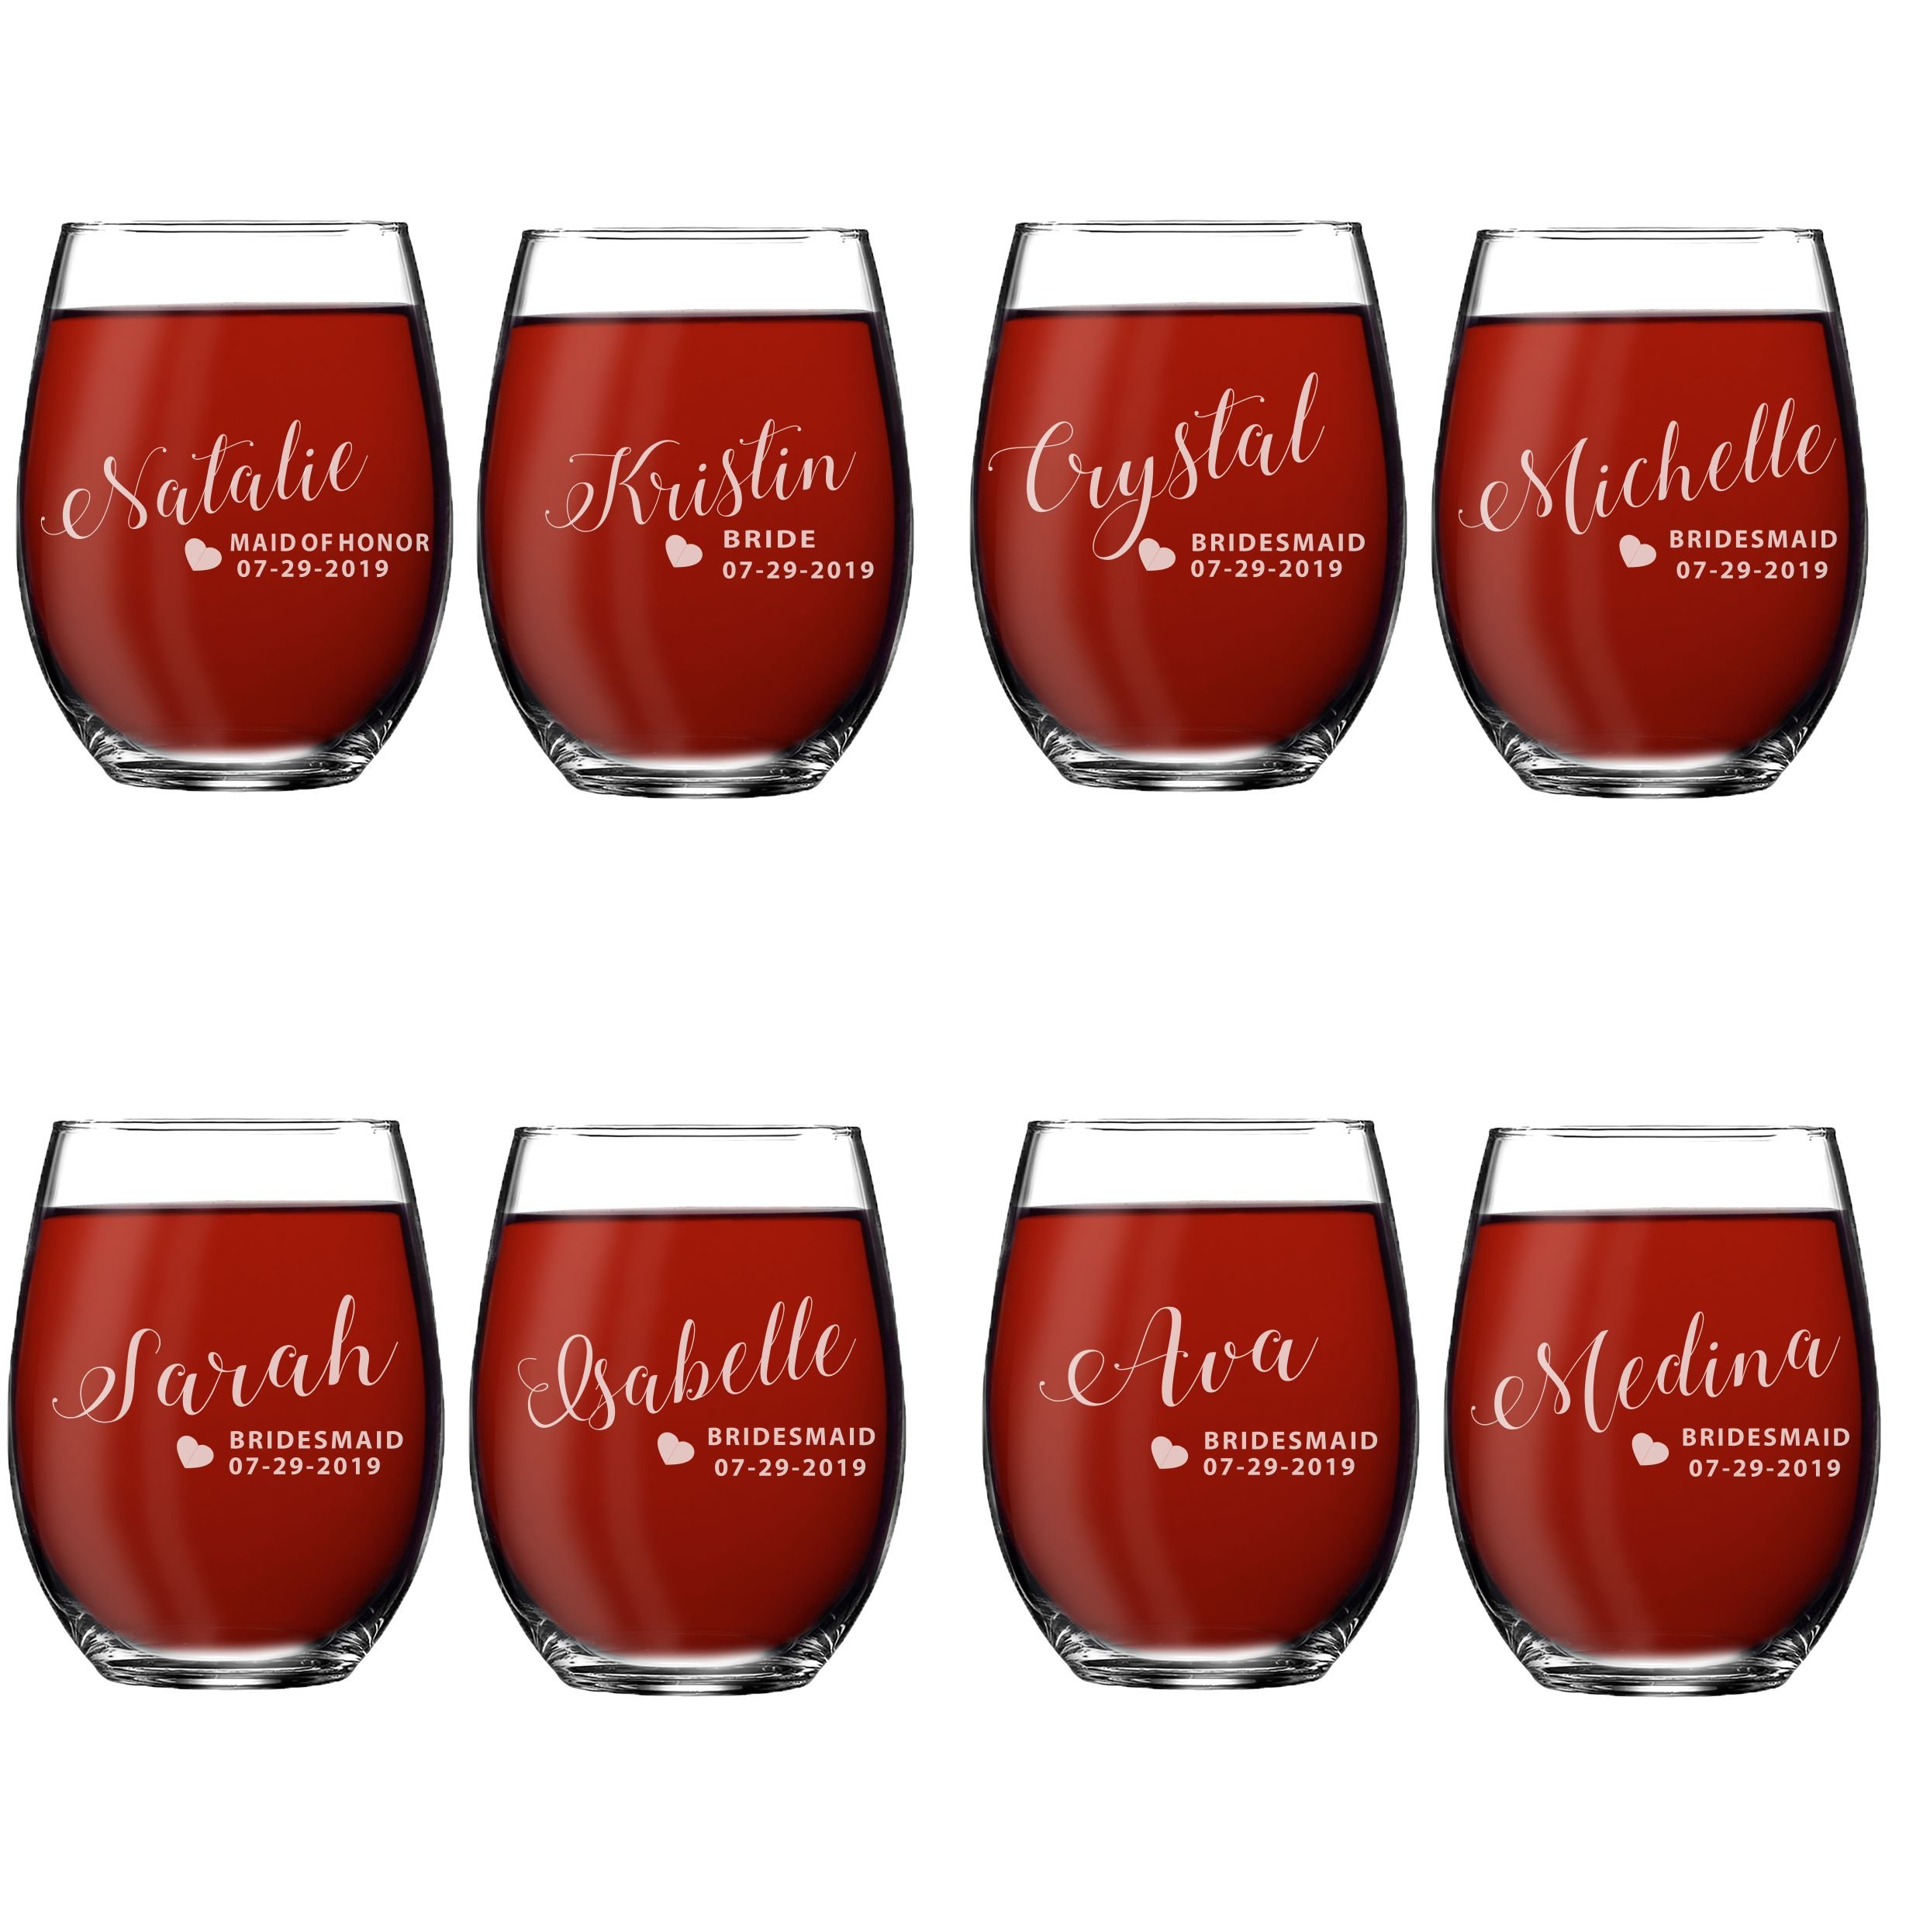 Set of 1, 2, 3, 4, 5, 6, 7, 8 Custom Engraved Bridesmaid Gifts - Personalized Stemless Wine Glasses - Passion Style (8)